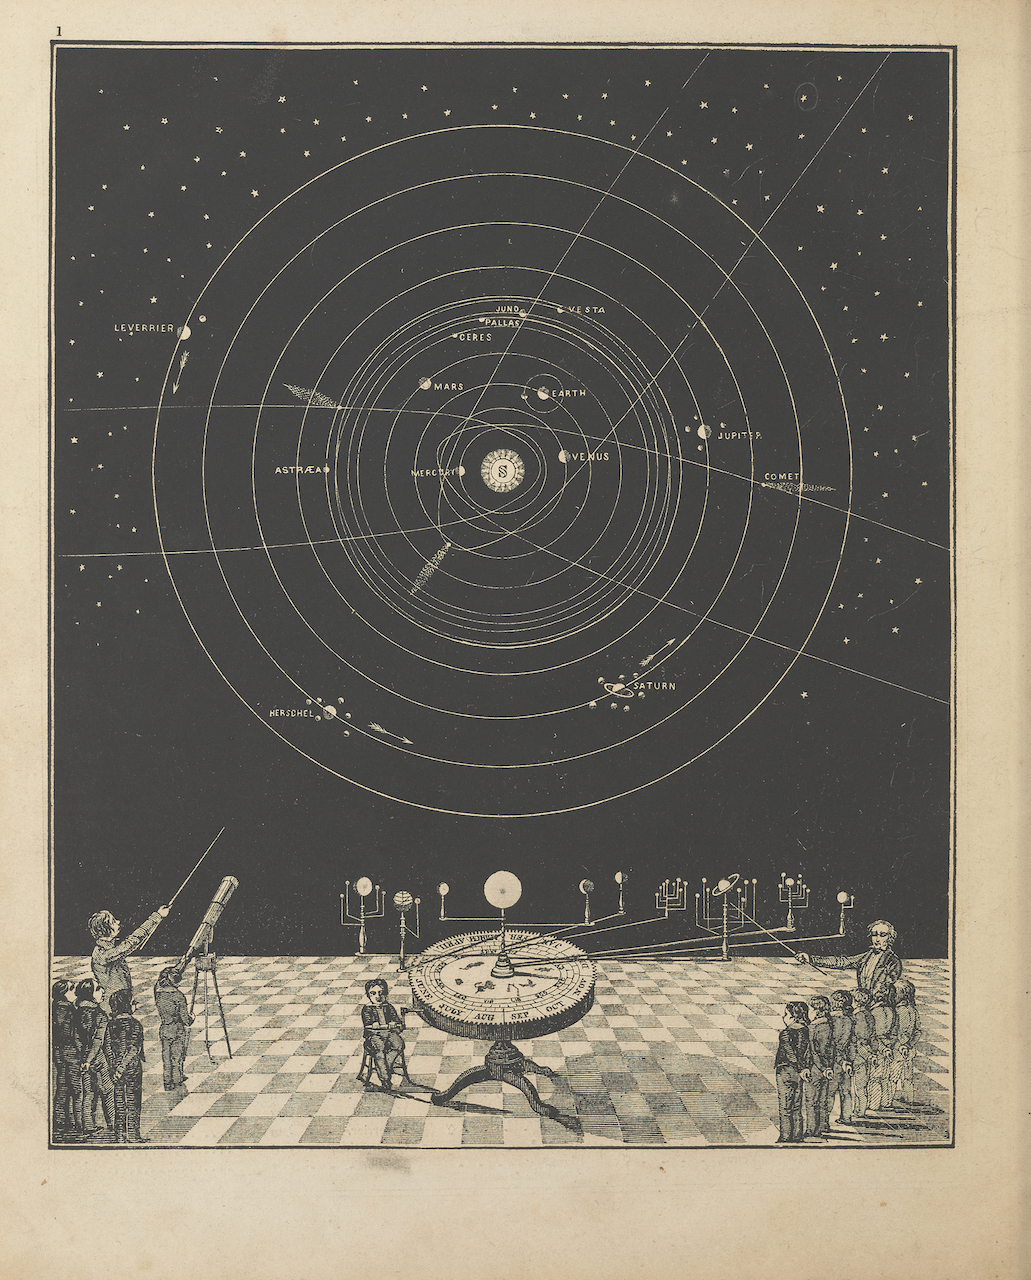 Illustration from Asa Smith's 'Smith's Illustrated Astronomy: Designed for the Use of the Public or Common Schools in the United States' (New York, 1849) (courtesy Smithsonian Libraries, gift of the Burndy Library)